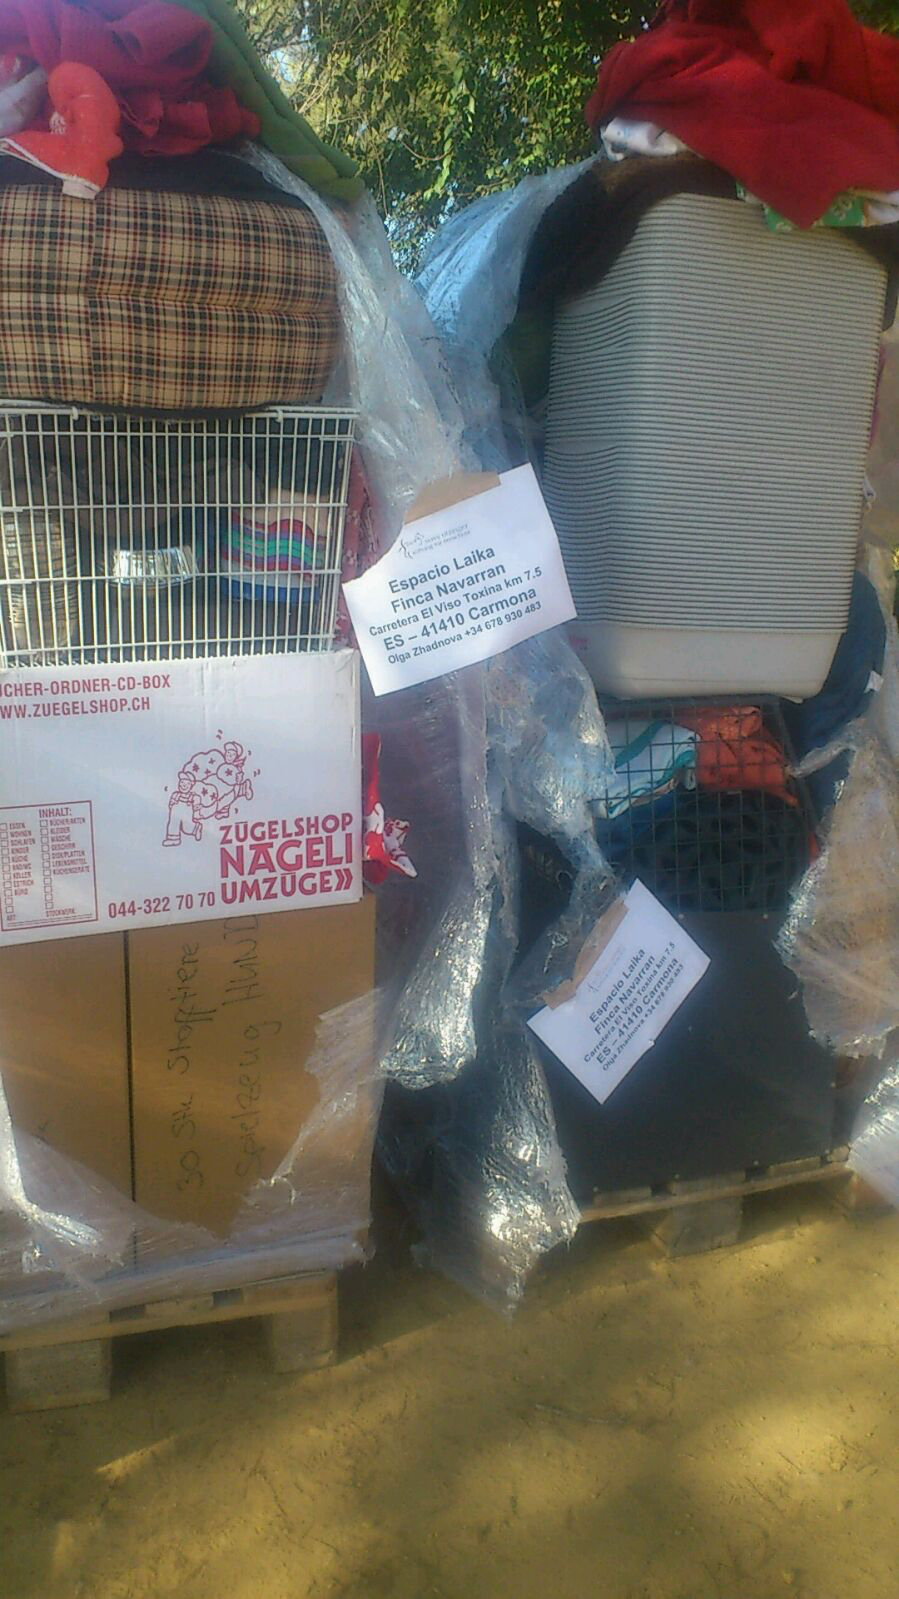 Your donations are well being received: Material delivery to Spain